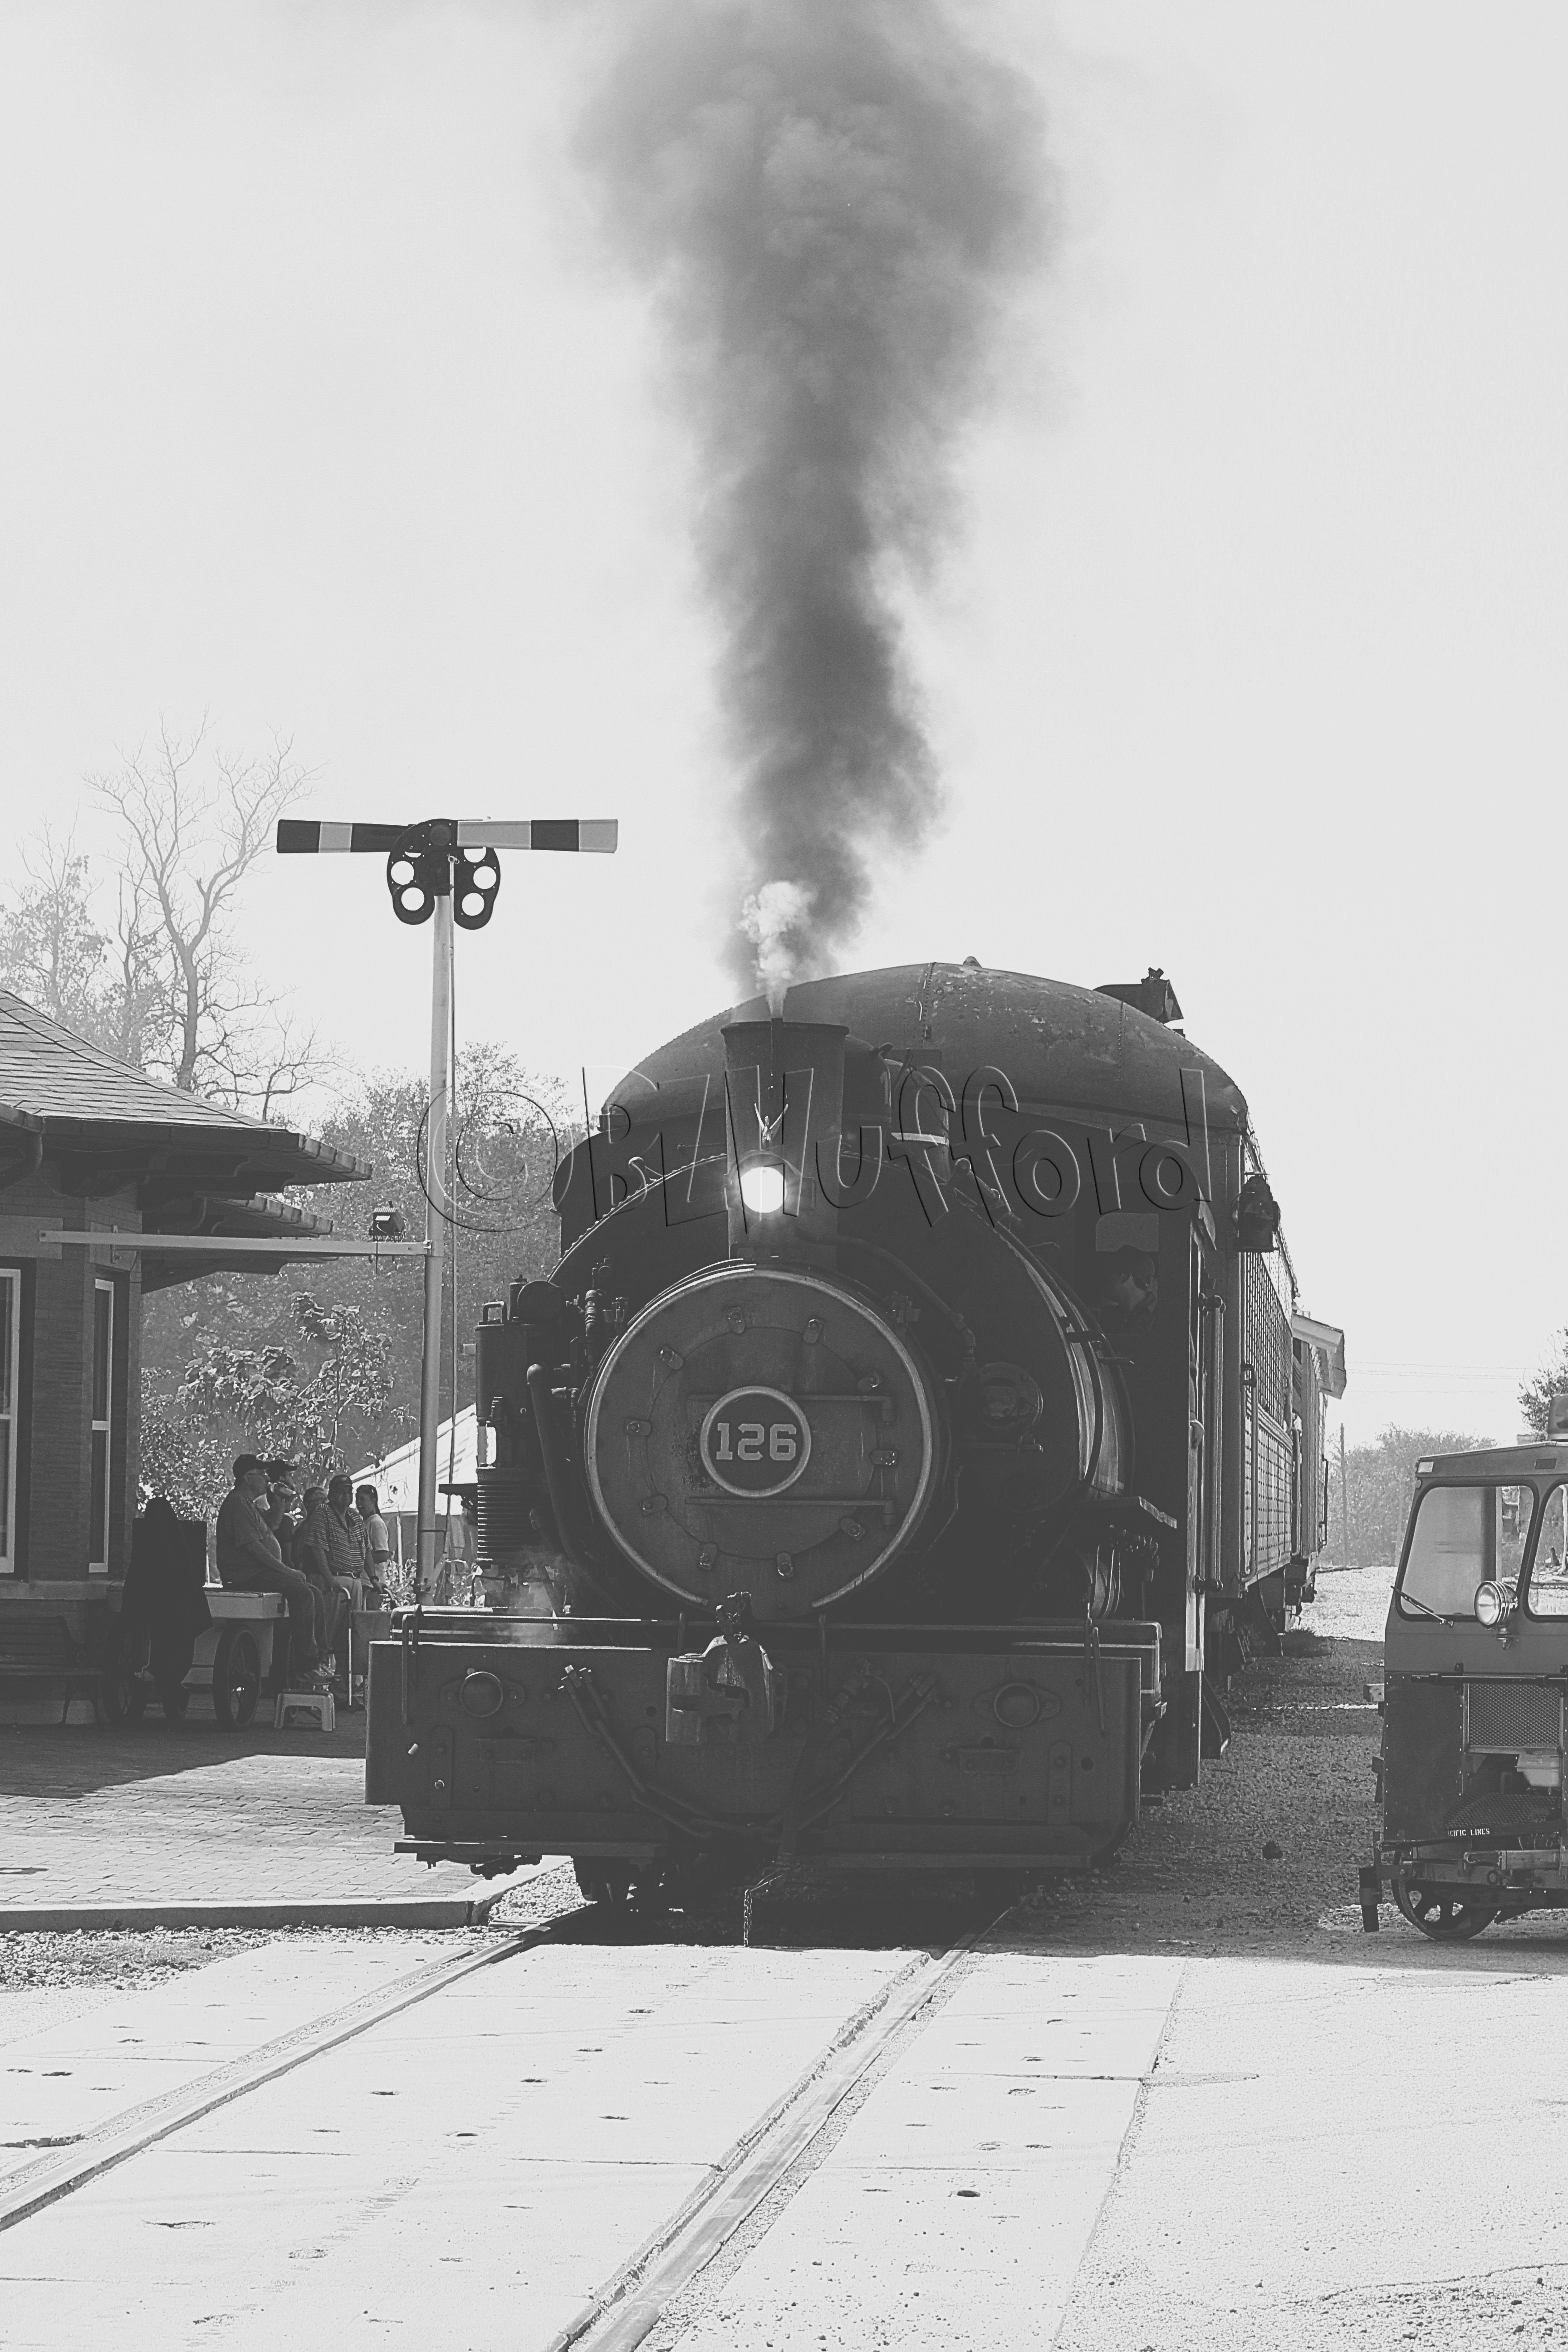 249/366 Train Kept a Rollin Copyright Billie Hufford 2012. More photos, photography tips, etc...   https://www.facebook.com/pages/Billies-Photos/124893917625895